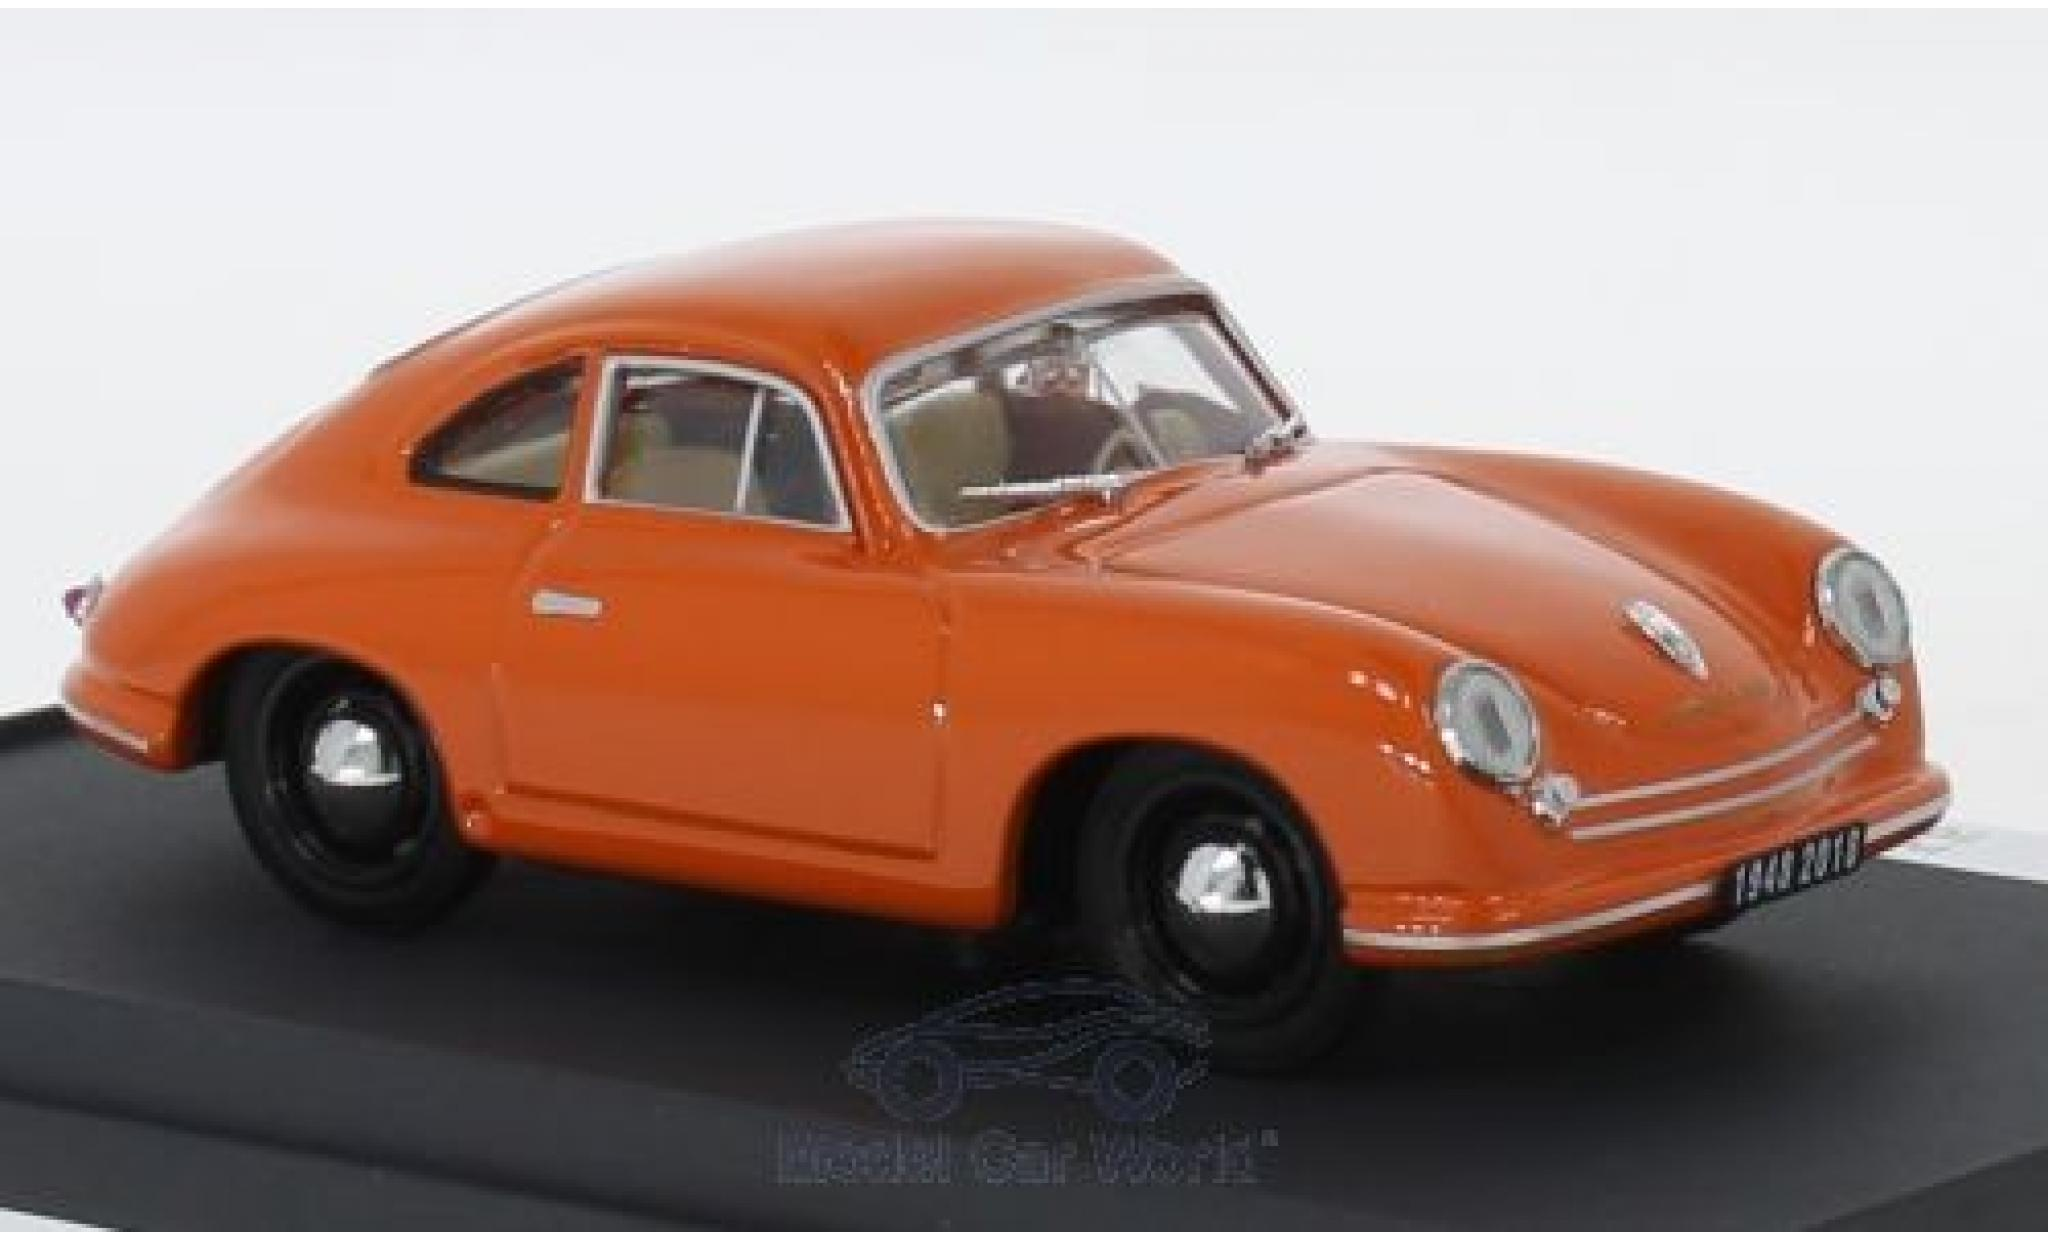 Porsche 356 1/43 Brumm /2 Gmünd orange 1948 Happy Birthday